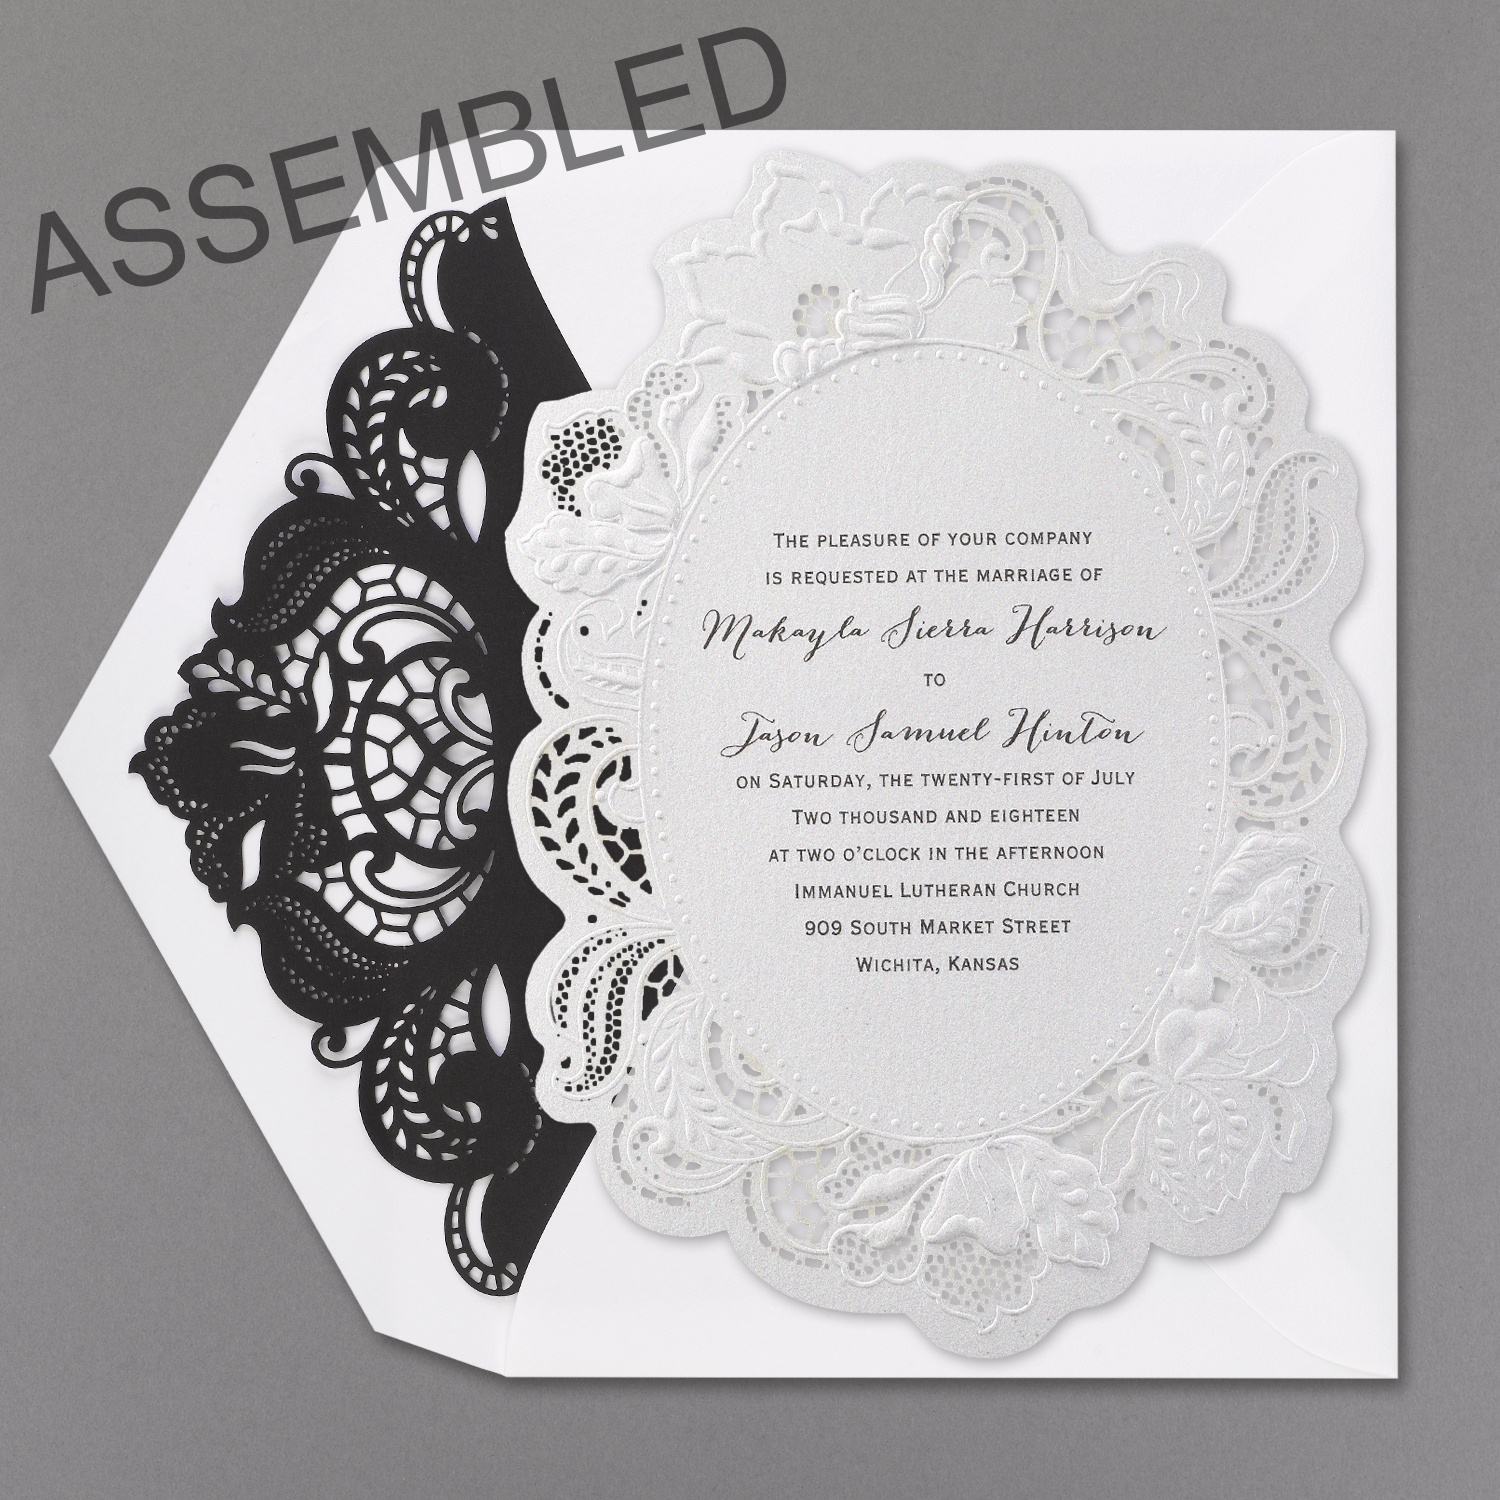 Wedding Invitation News: August 2015